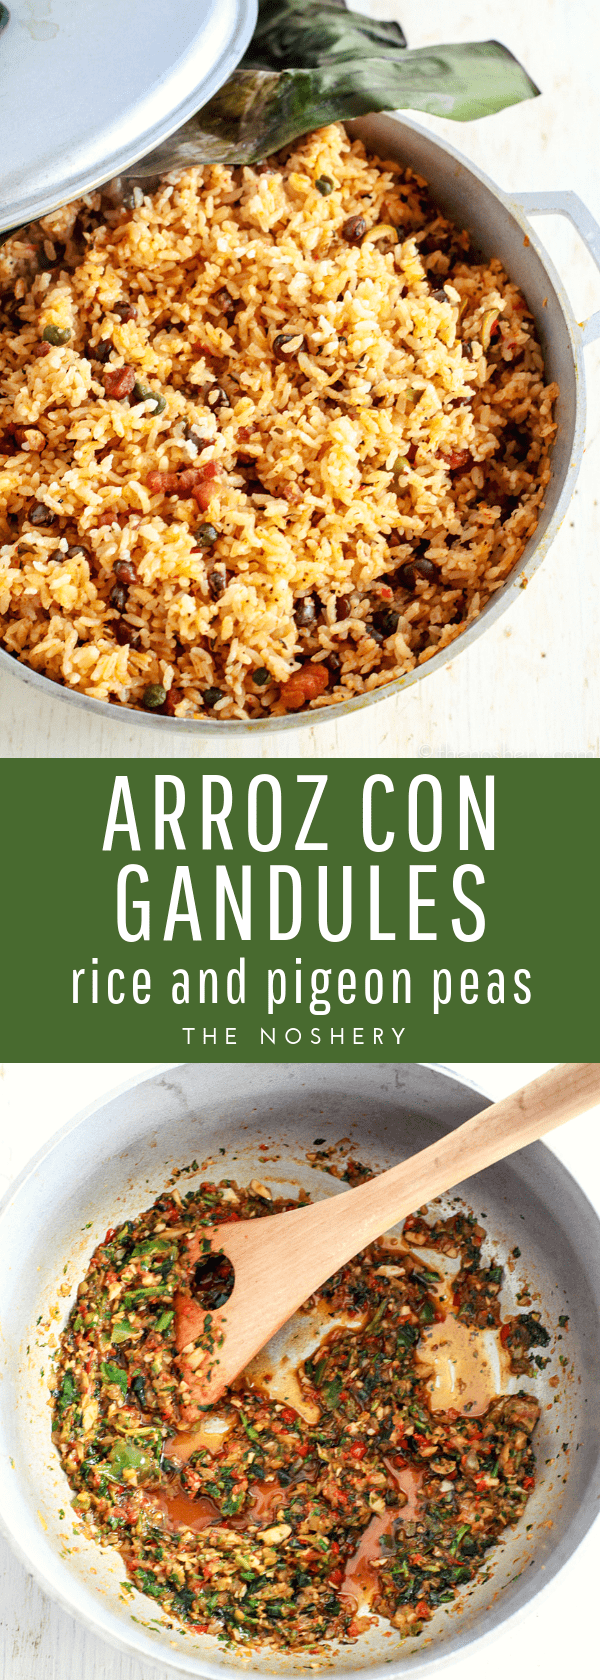 Arroz con Gandules | Arroz con gandules is a flavorful rice dish with pigeon peas. It's traditionally served in Puerto Rico during Christmas but, appreciated year round. | The Noshery